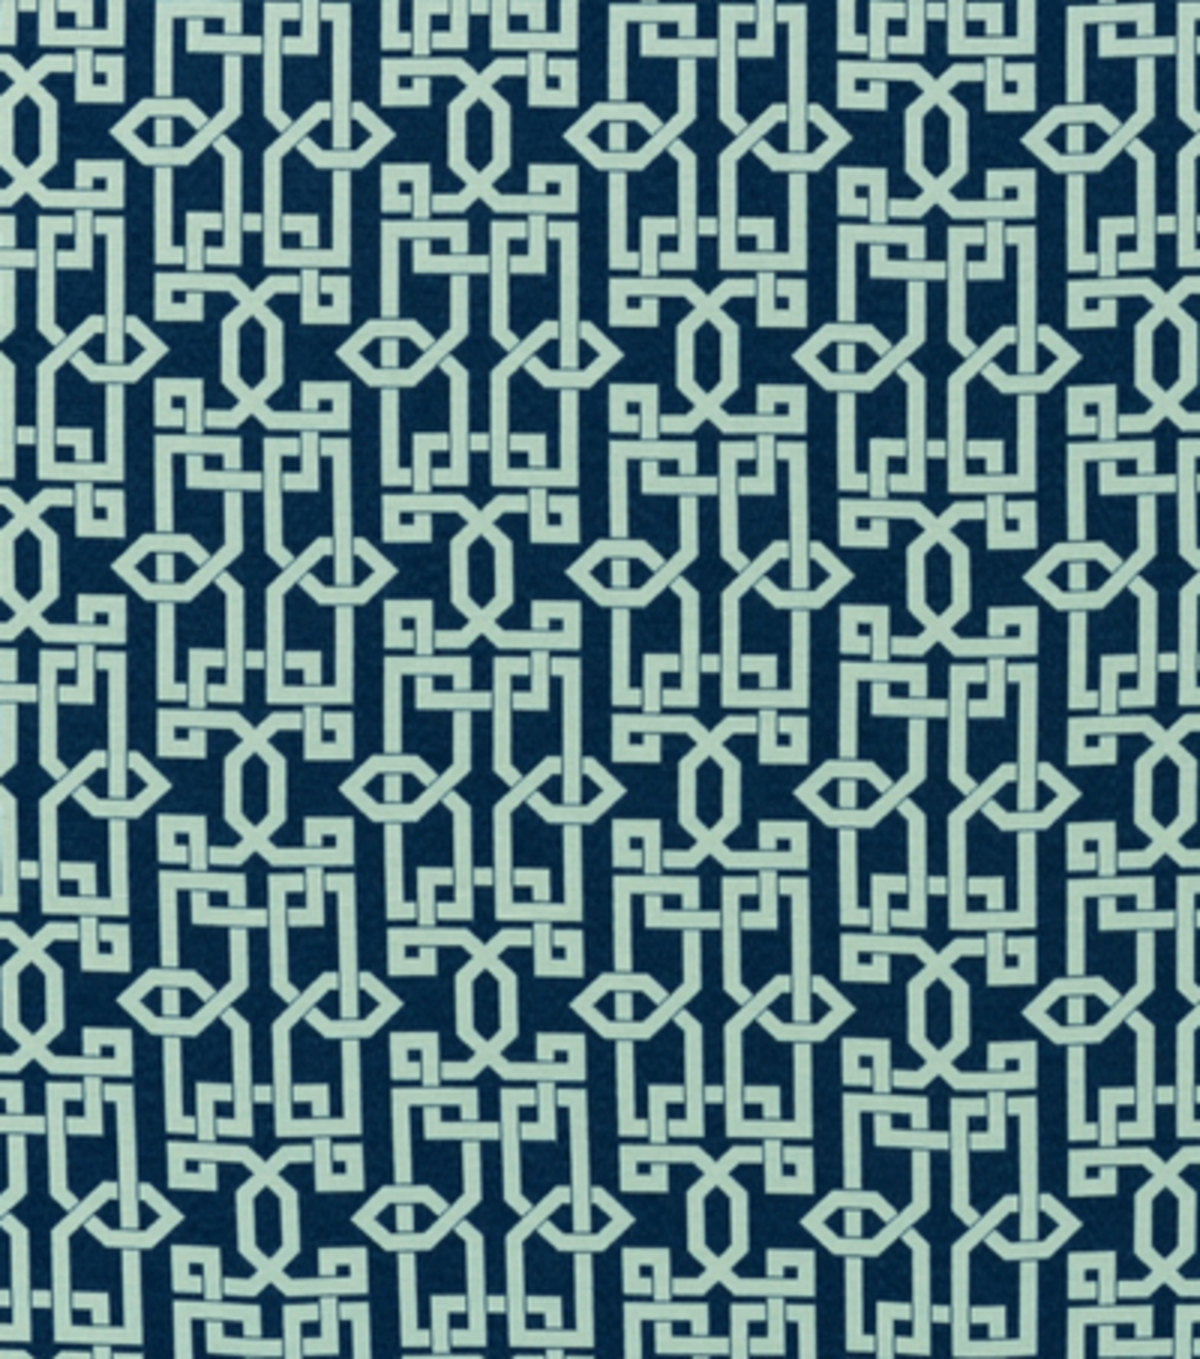 Home Decor 8\u0022x8\u0022 Fabric Swatch-Covington Labyrinth 594 Admiral